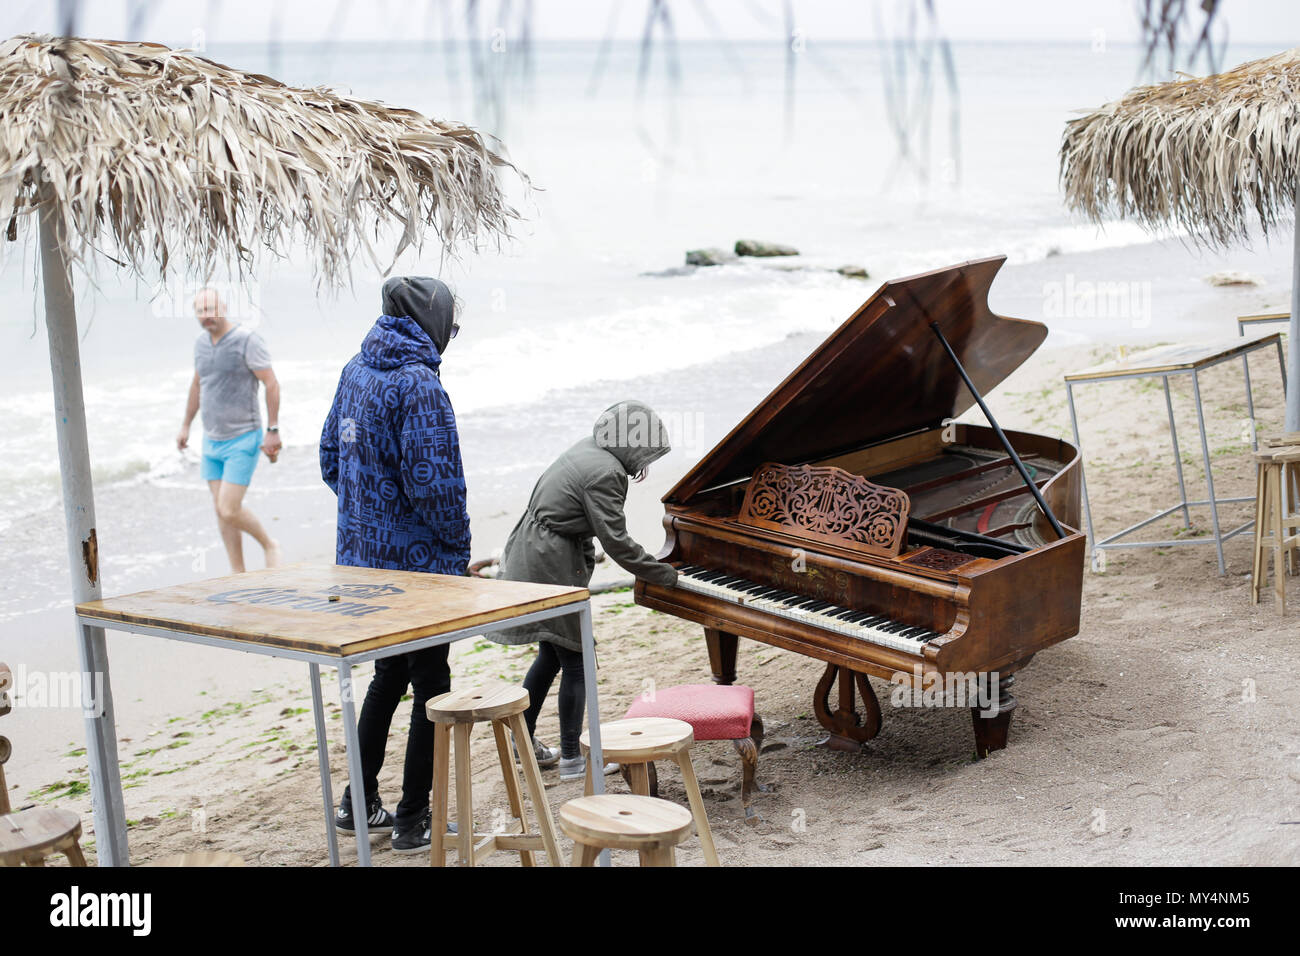 VAMA VECHE, ROMANIA - MAY 1, 2018: Young people playing with an old piano, after partying all night, early in the morning just before sunrise in the s - Stock Image